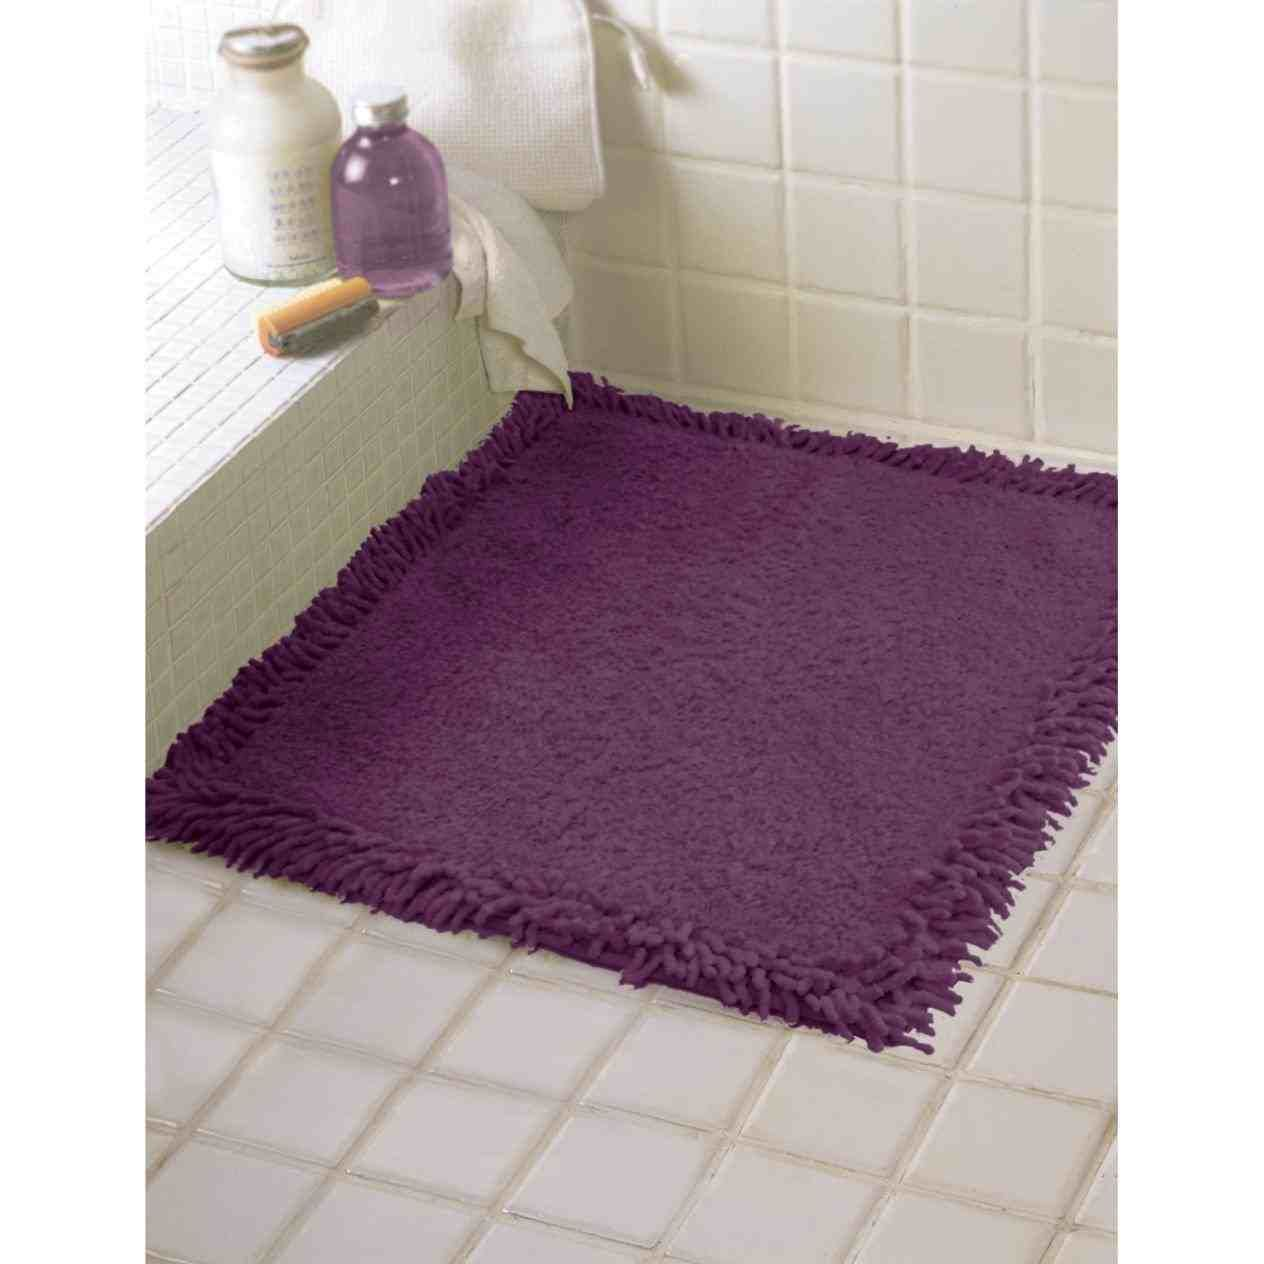 New Post Purple Bathroom Rugs And Towels